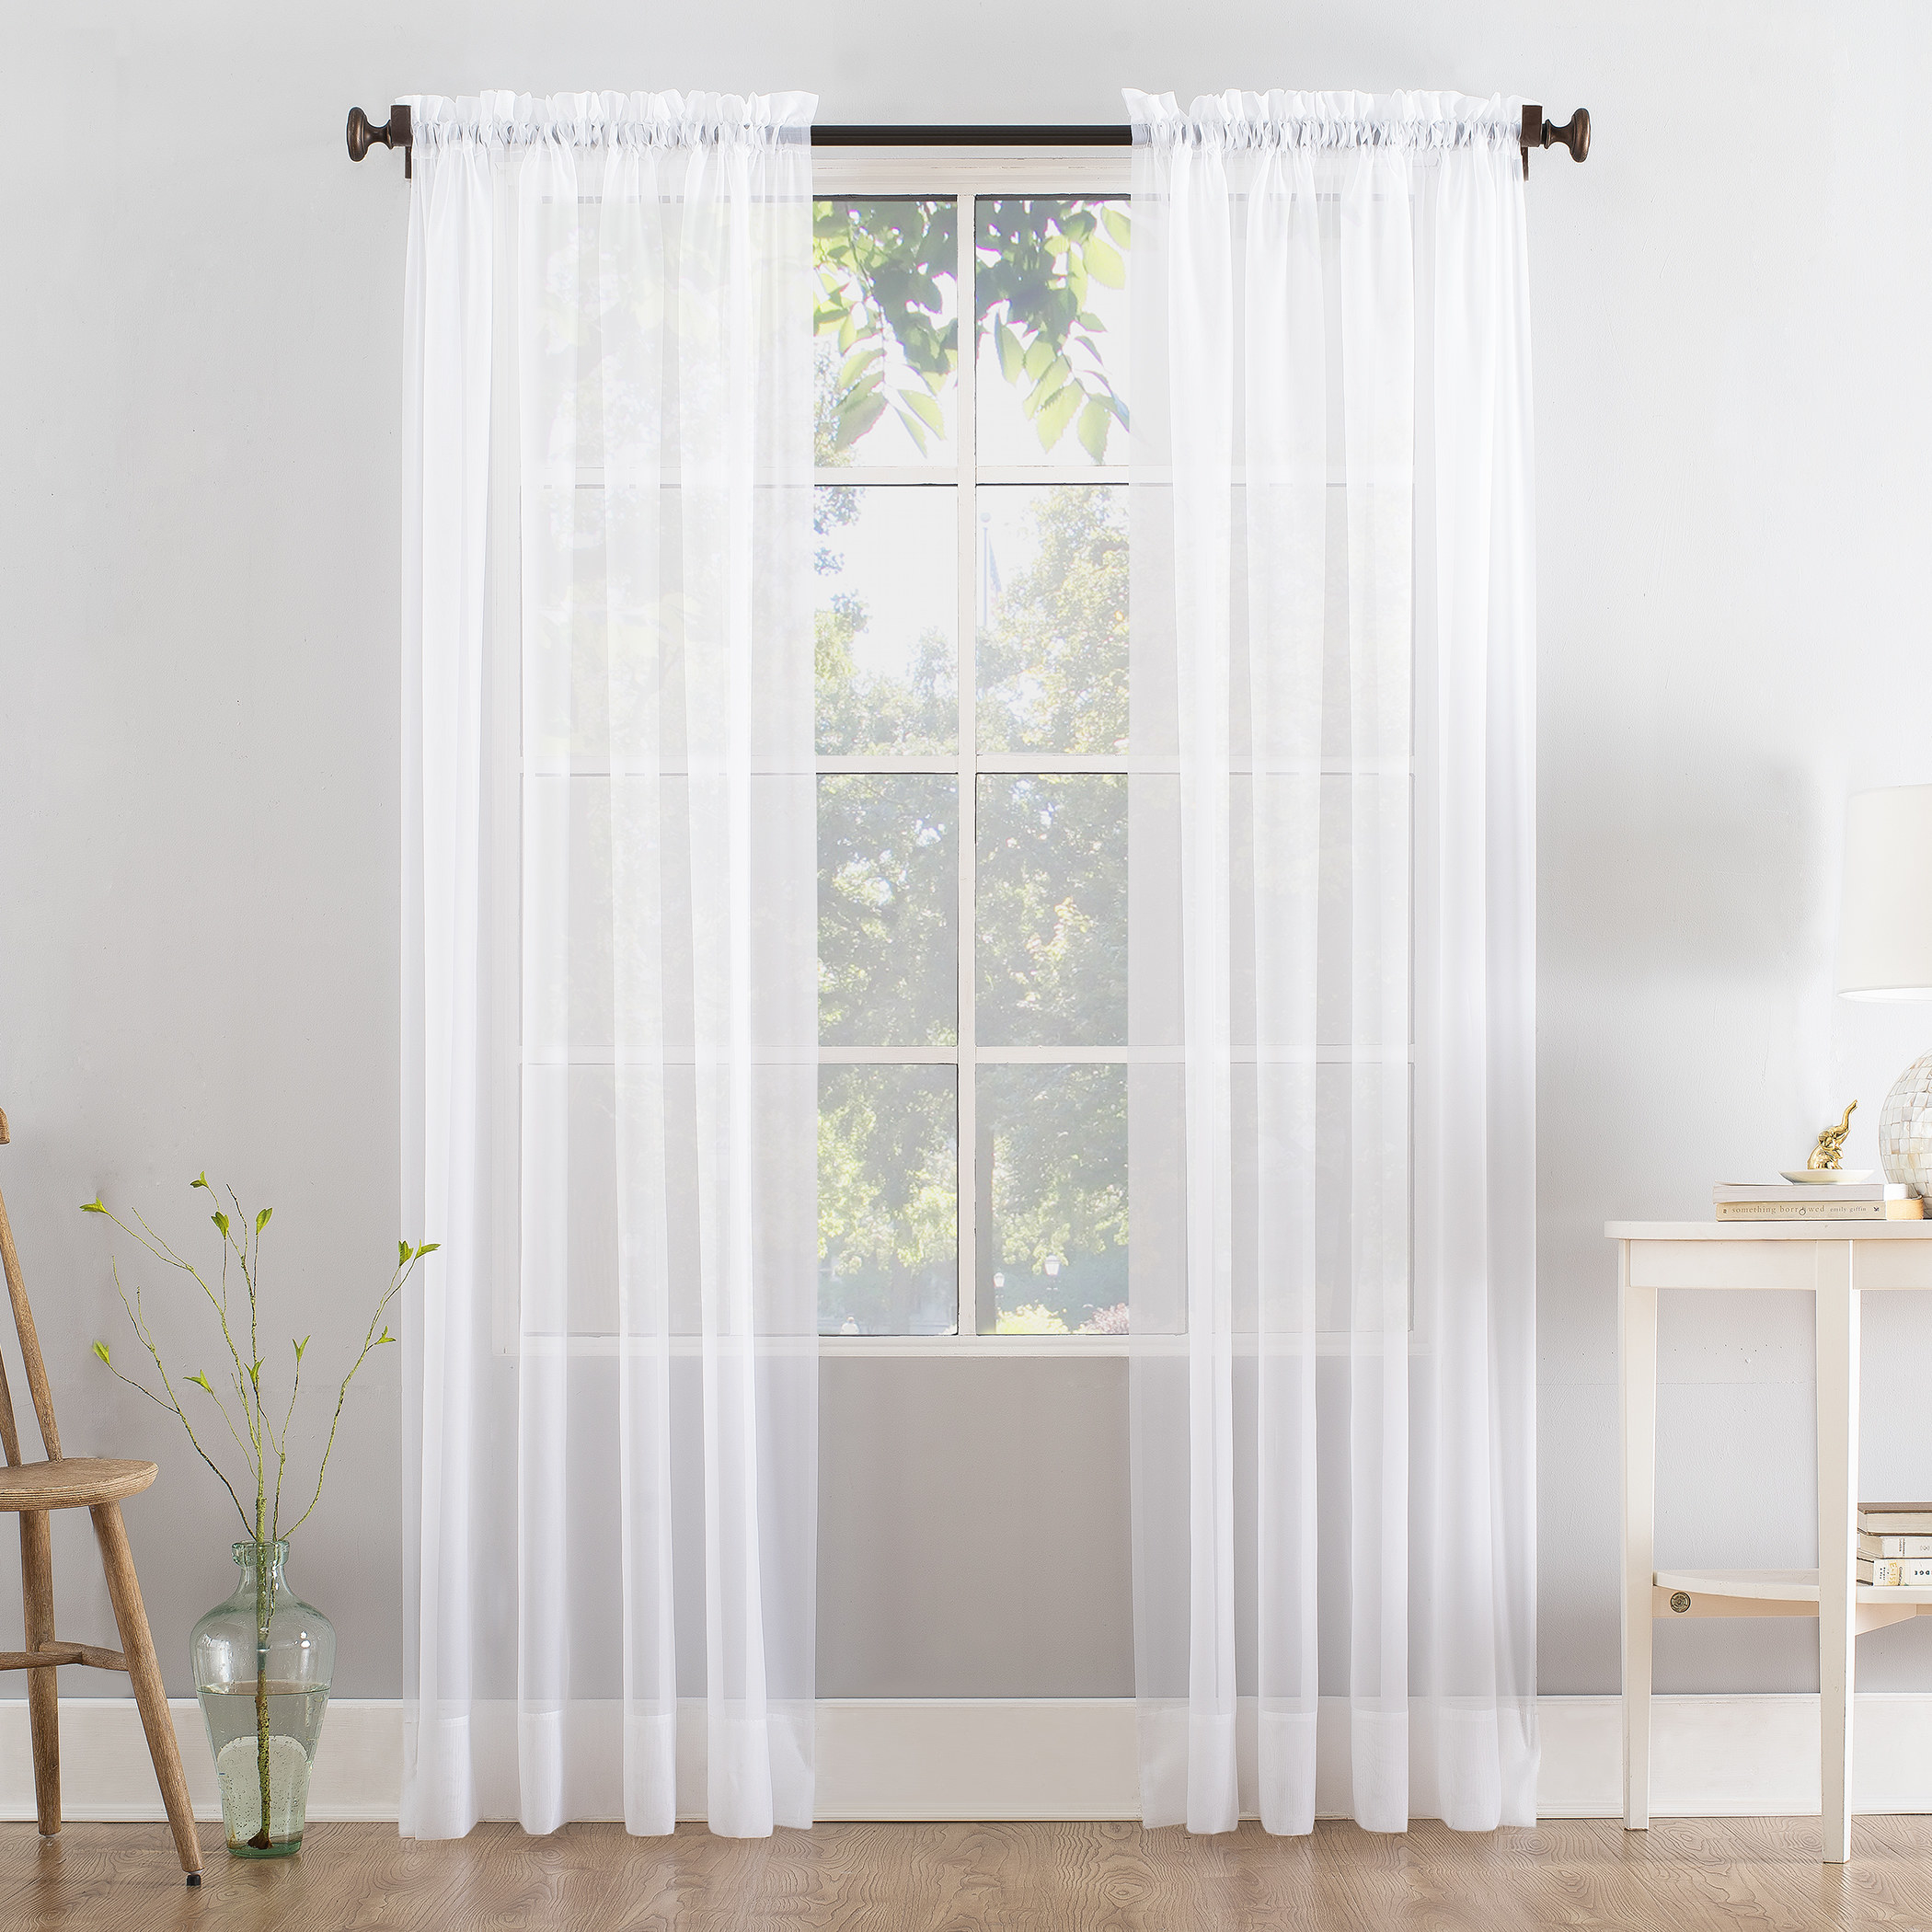 The white sheer curtains